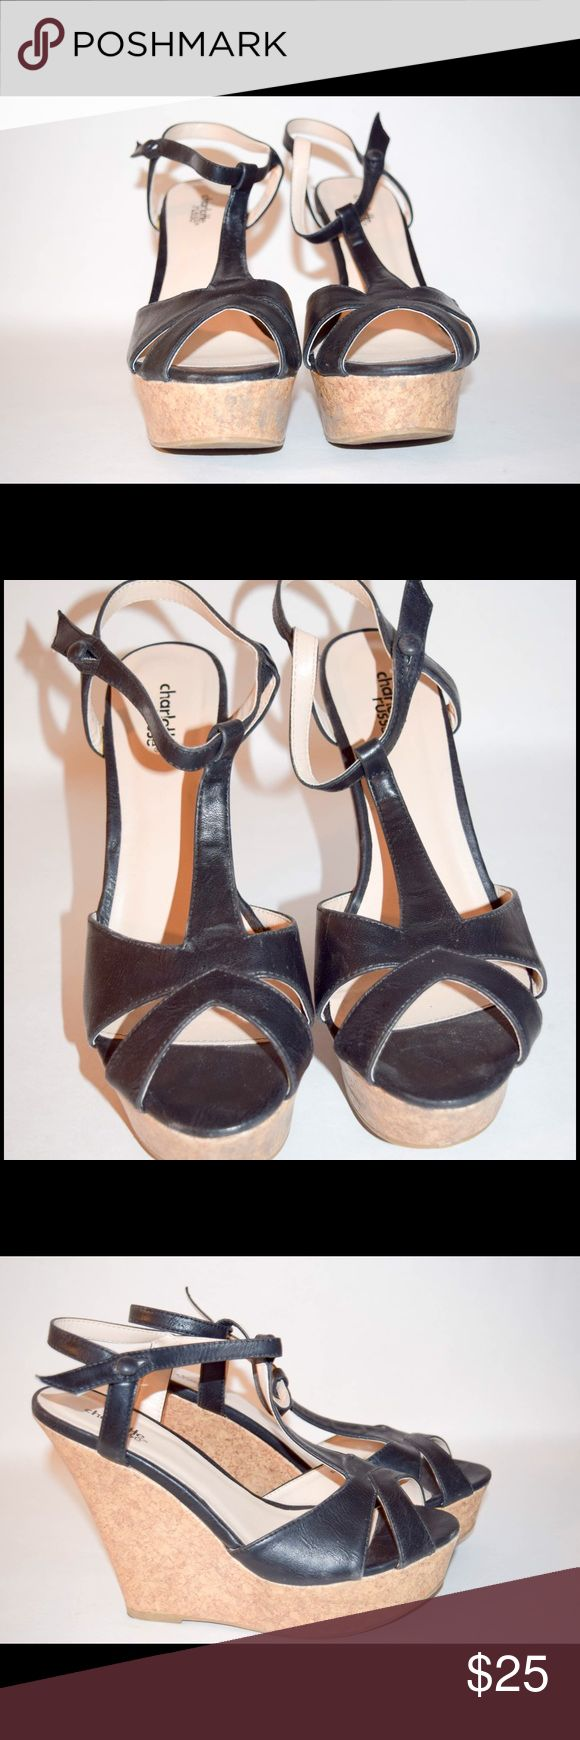 Black Charlotte Russe wedges Only warn once for a few hours!! Super cute black wedges!! Charlotte Russe Shoes Wedges